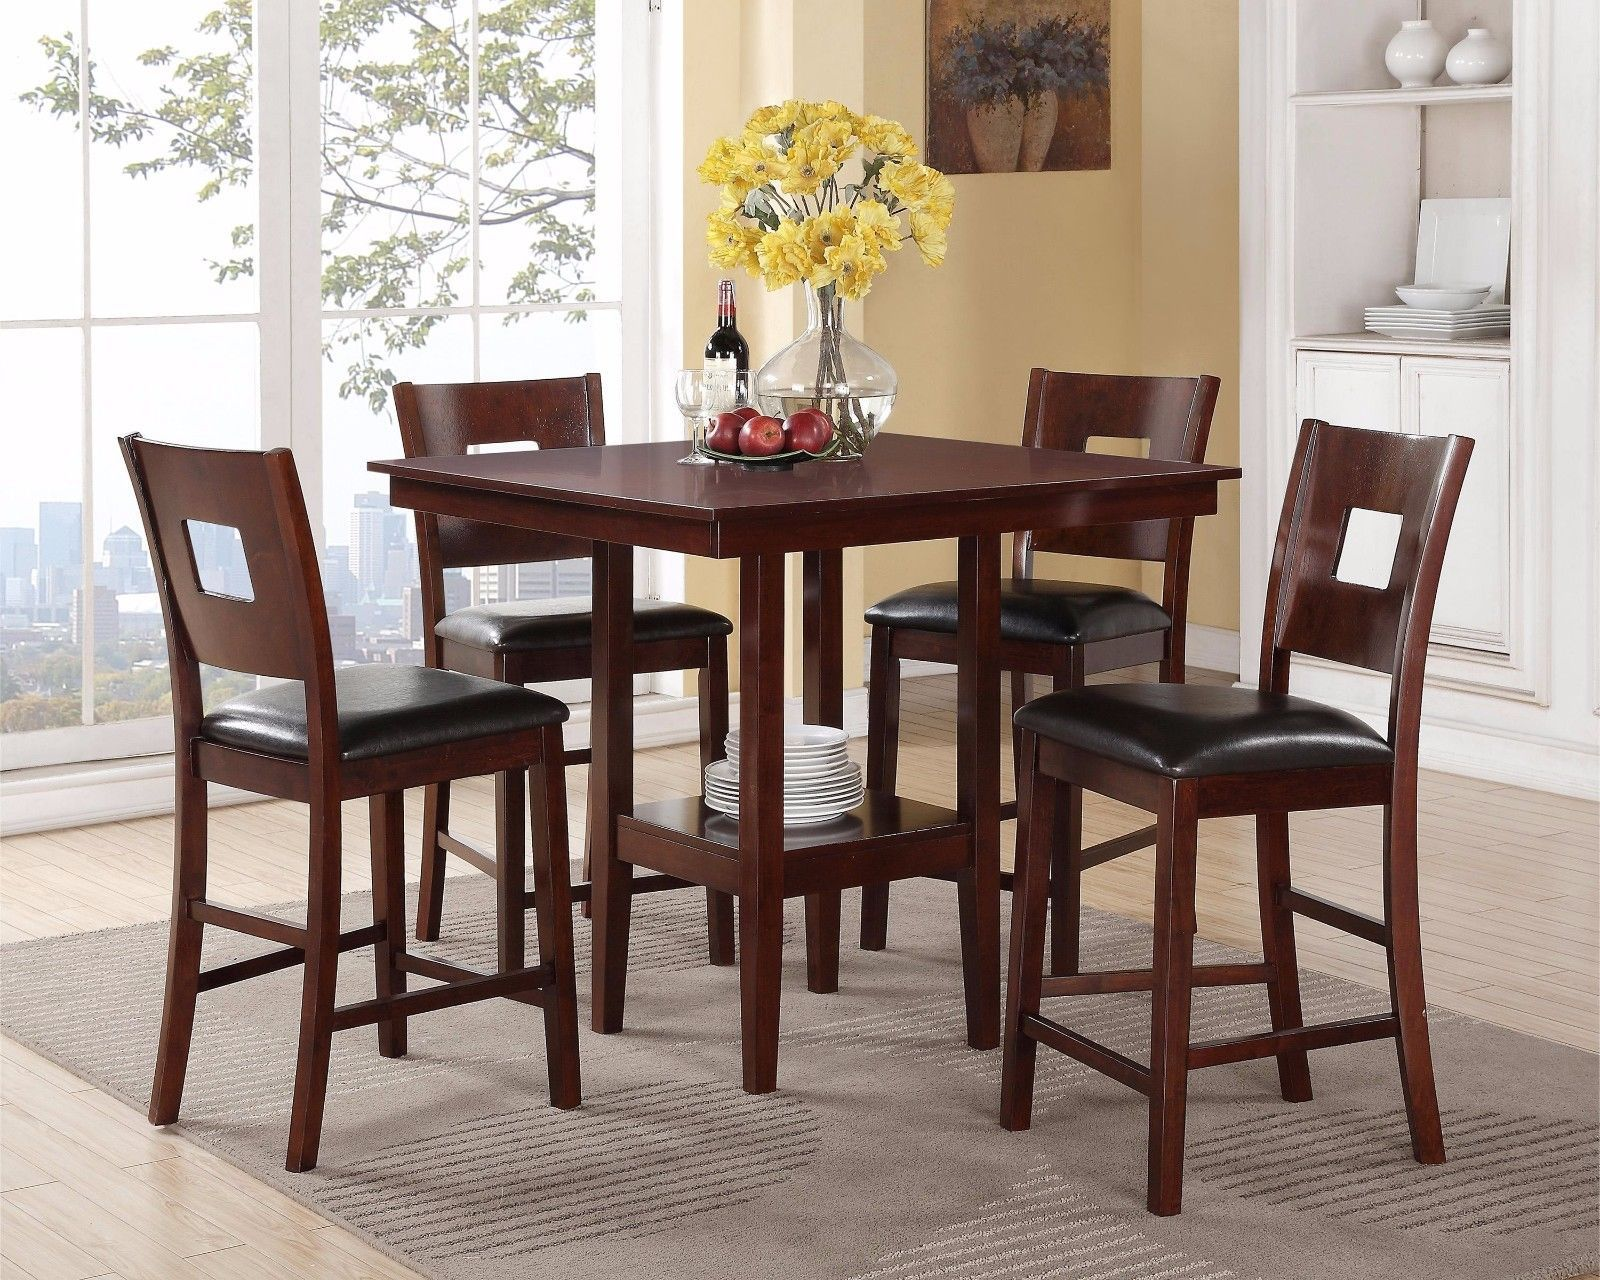 Crown Mark 2783 Dining Room Set 5pc. Issac Counter Height Dinette Casual Style